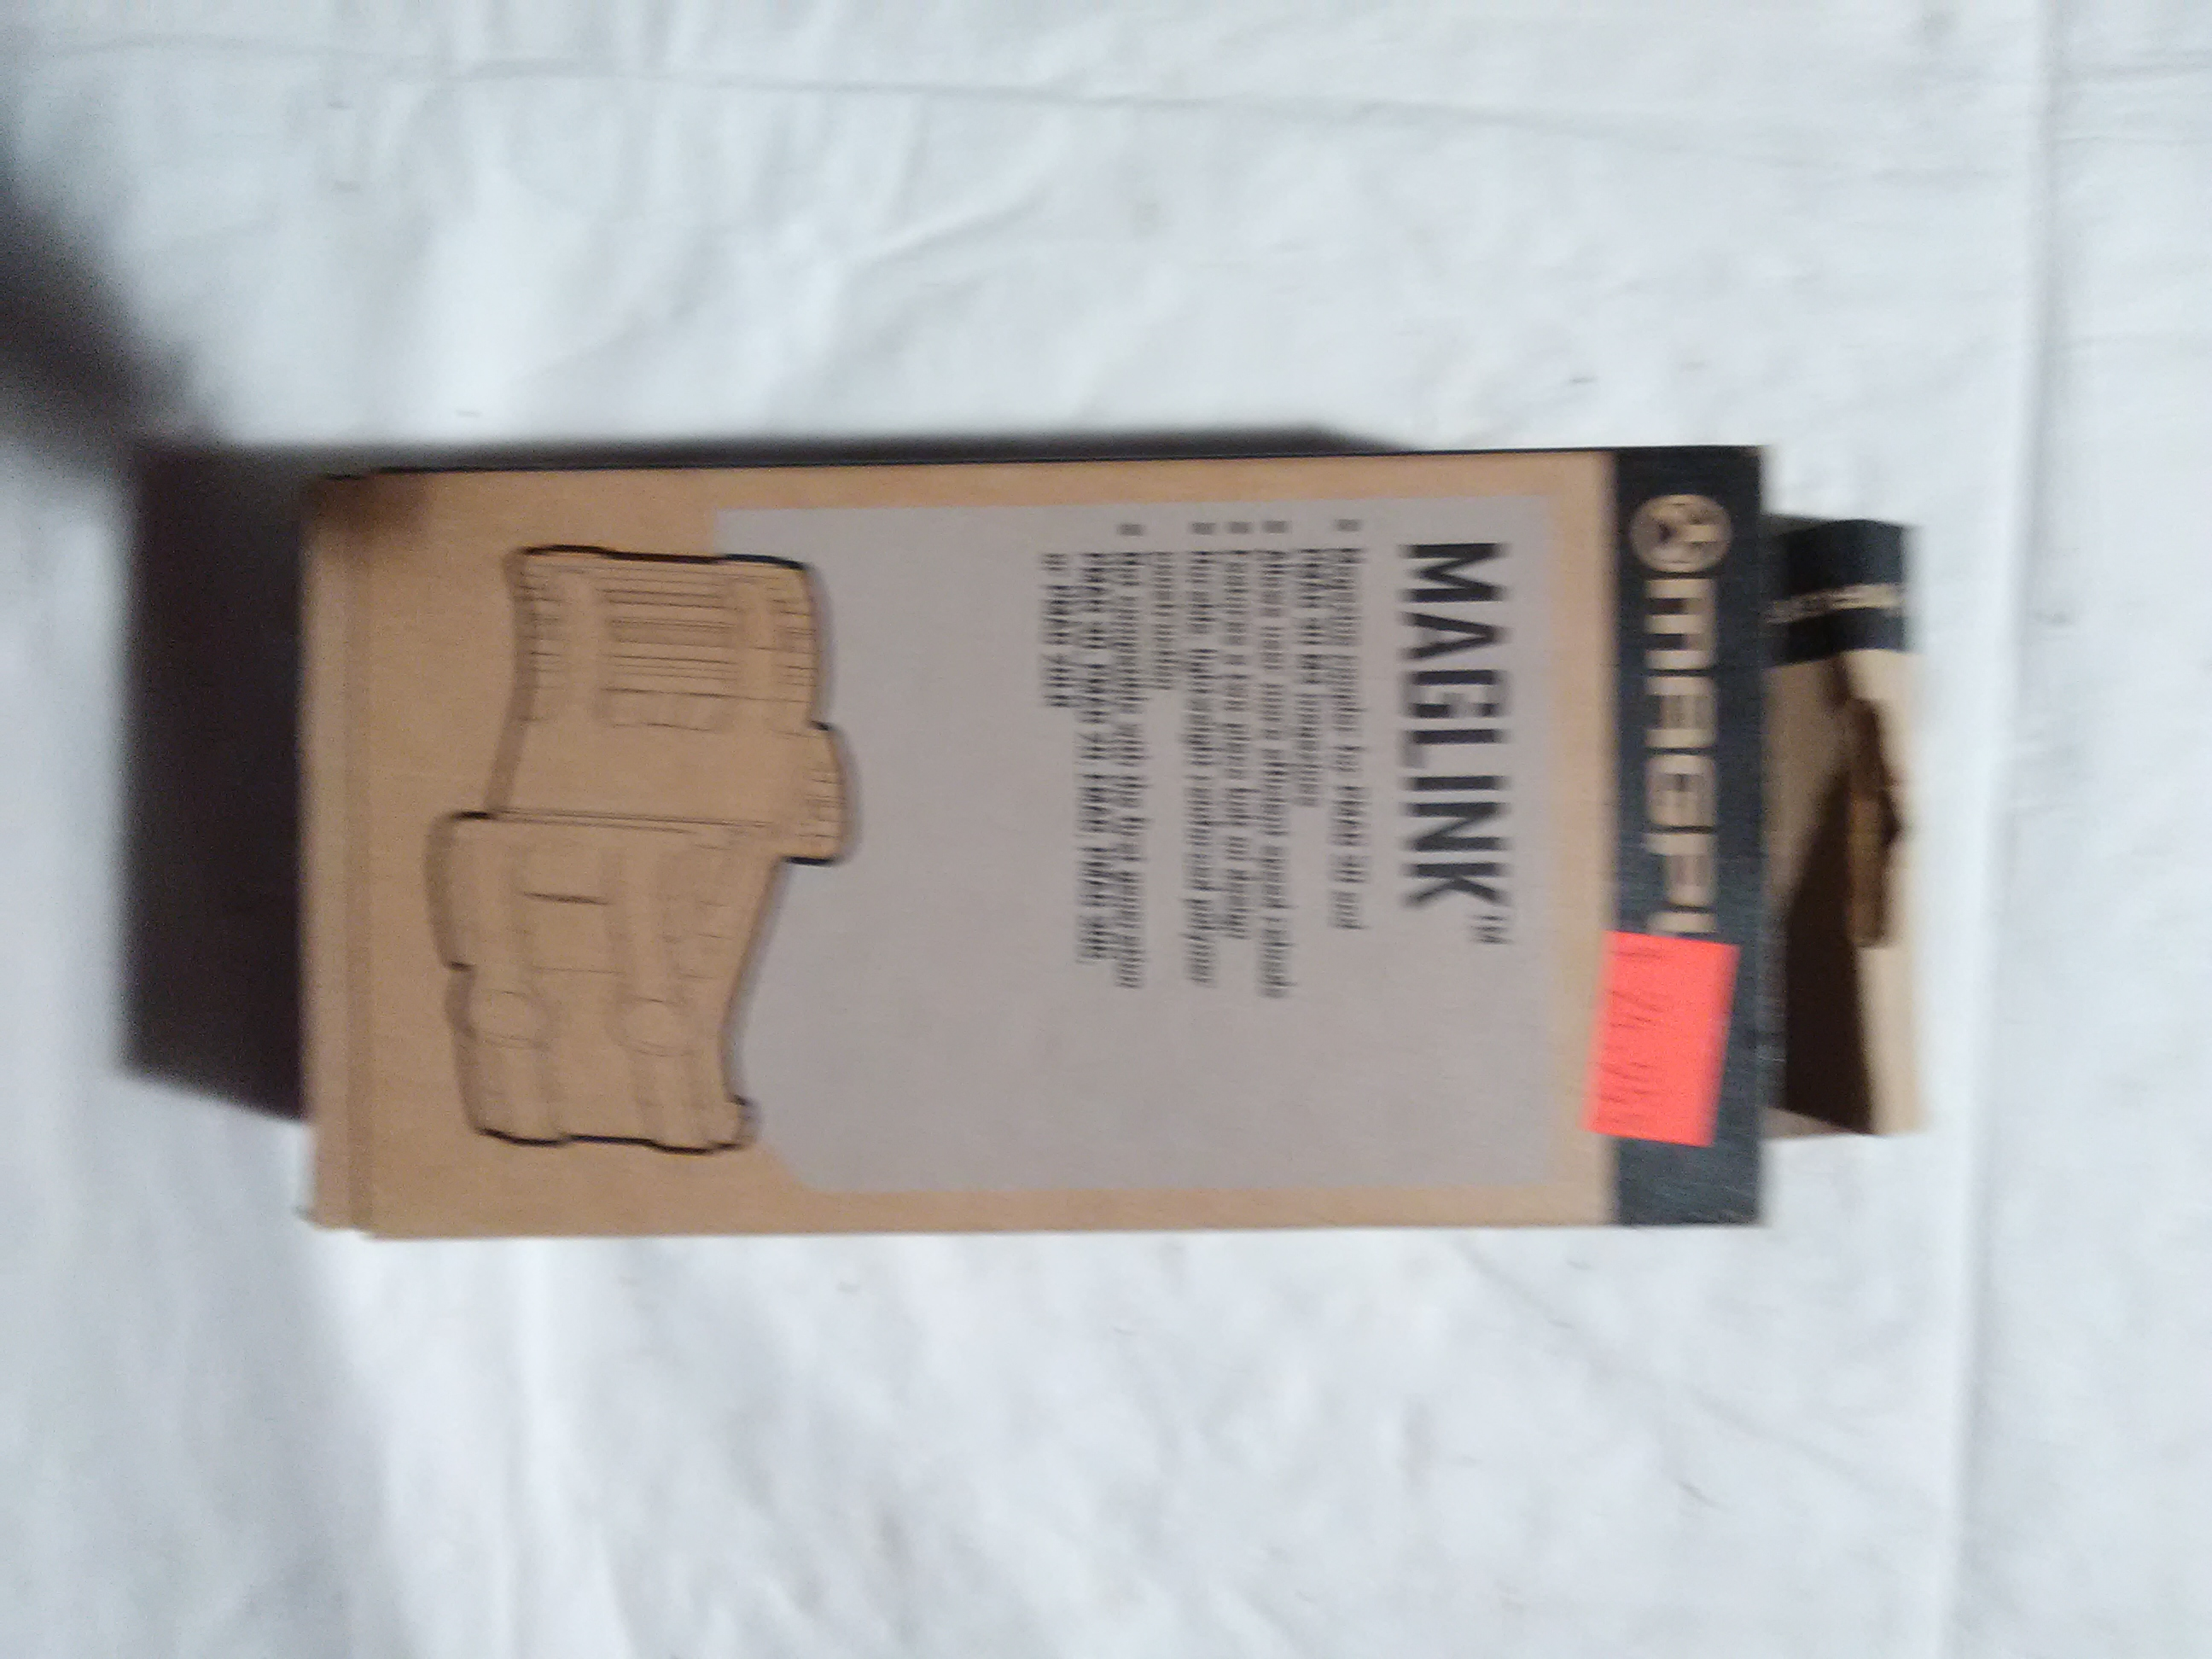 Magpul Maglink Magazine coupler for AR/15 new in box